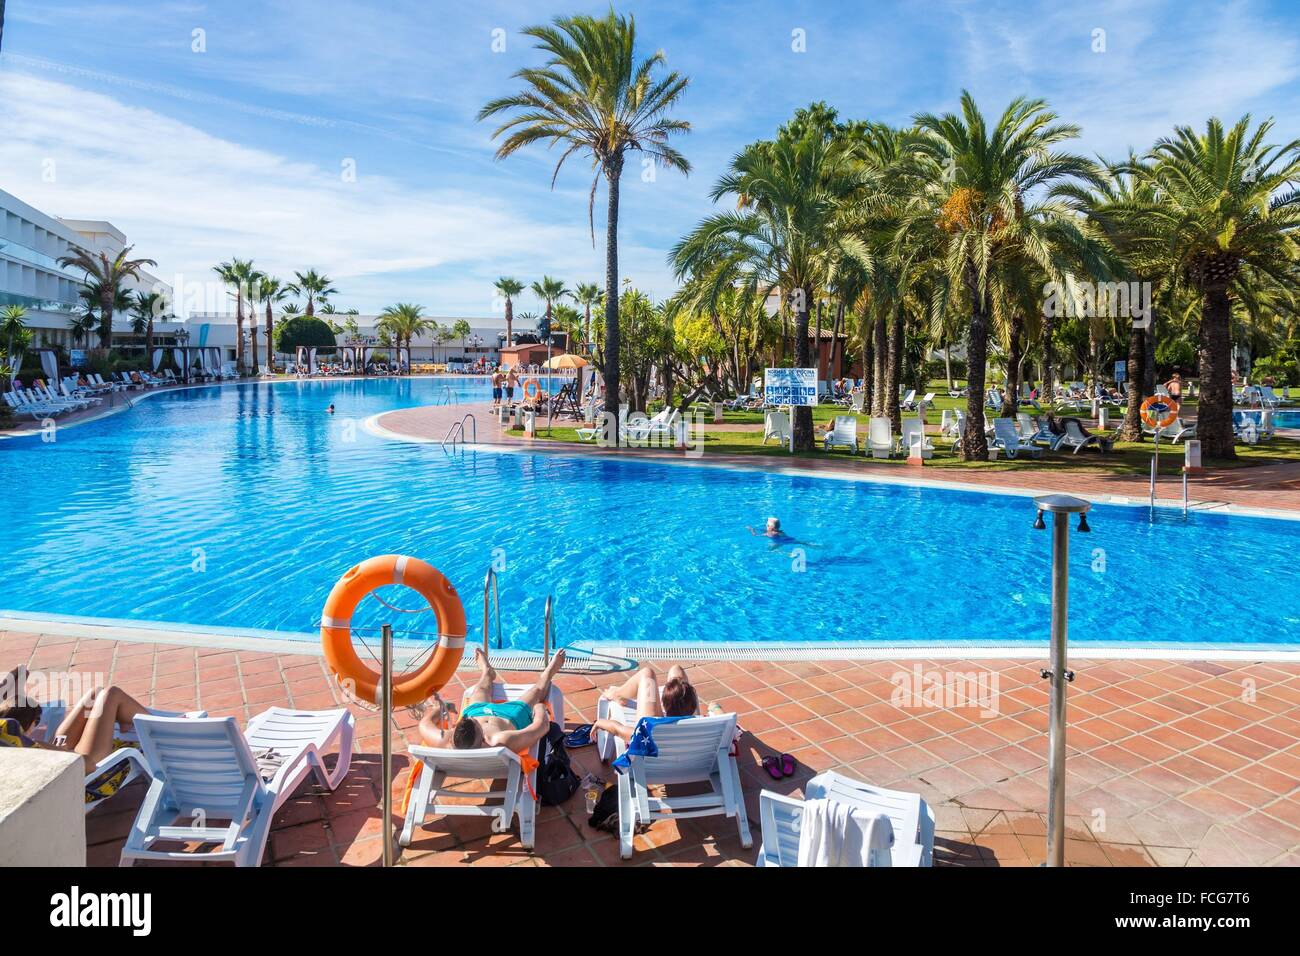 ILLUSTRATION OF ANDALUSIA, COSTA DEL SOL, SOUTHERN SPAIN, EUROPE - Stock Image